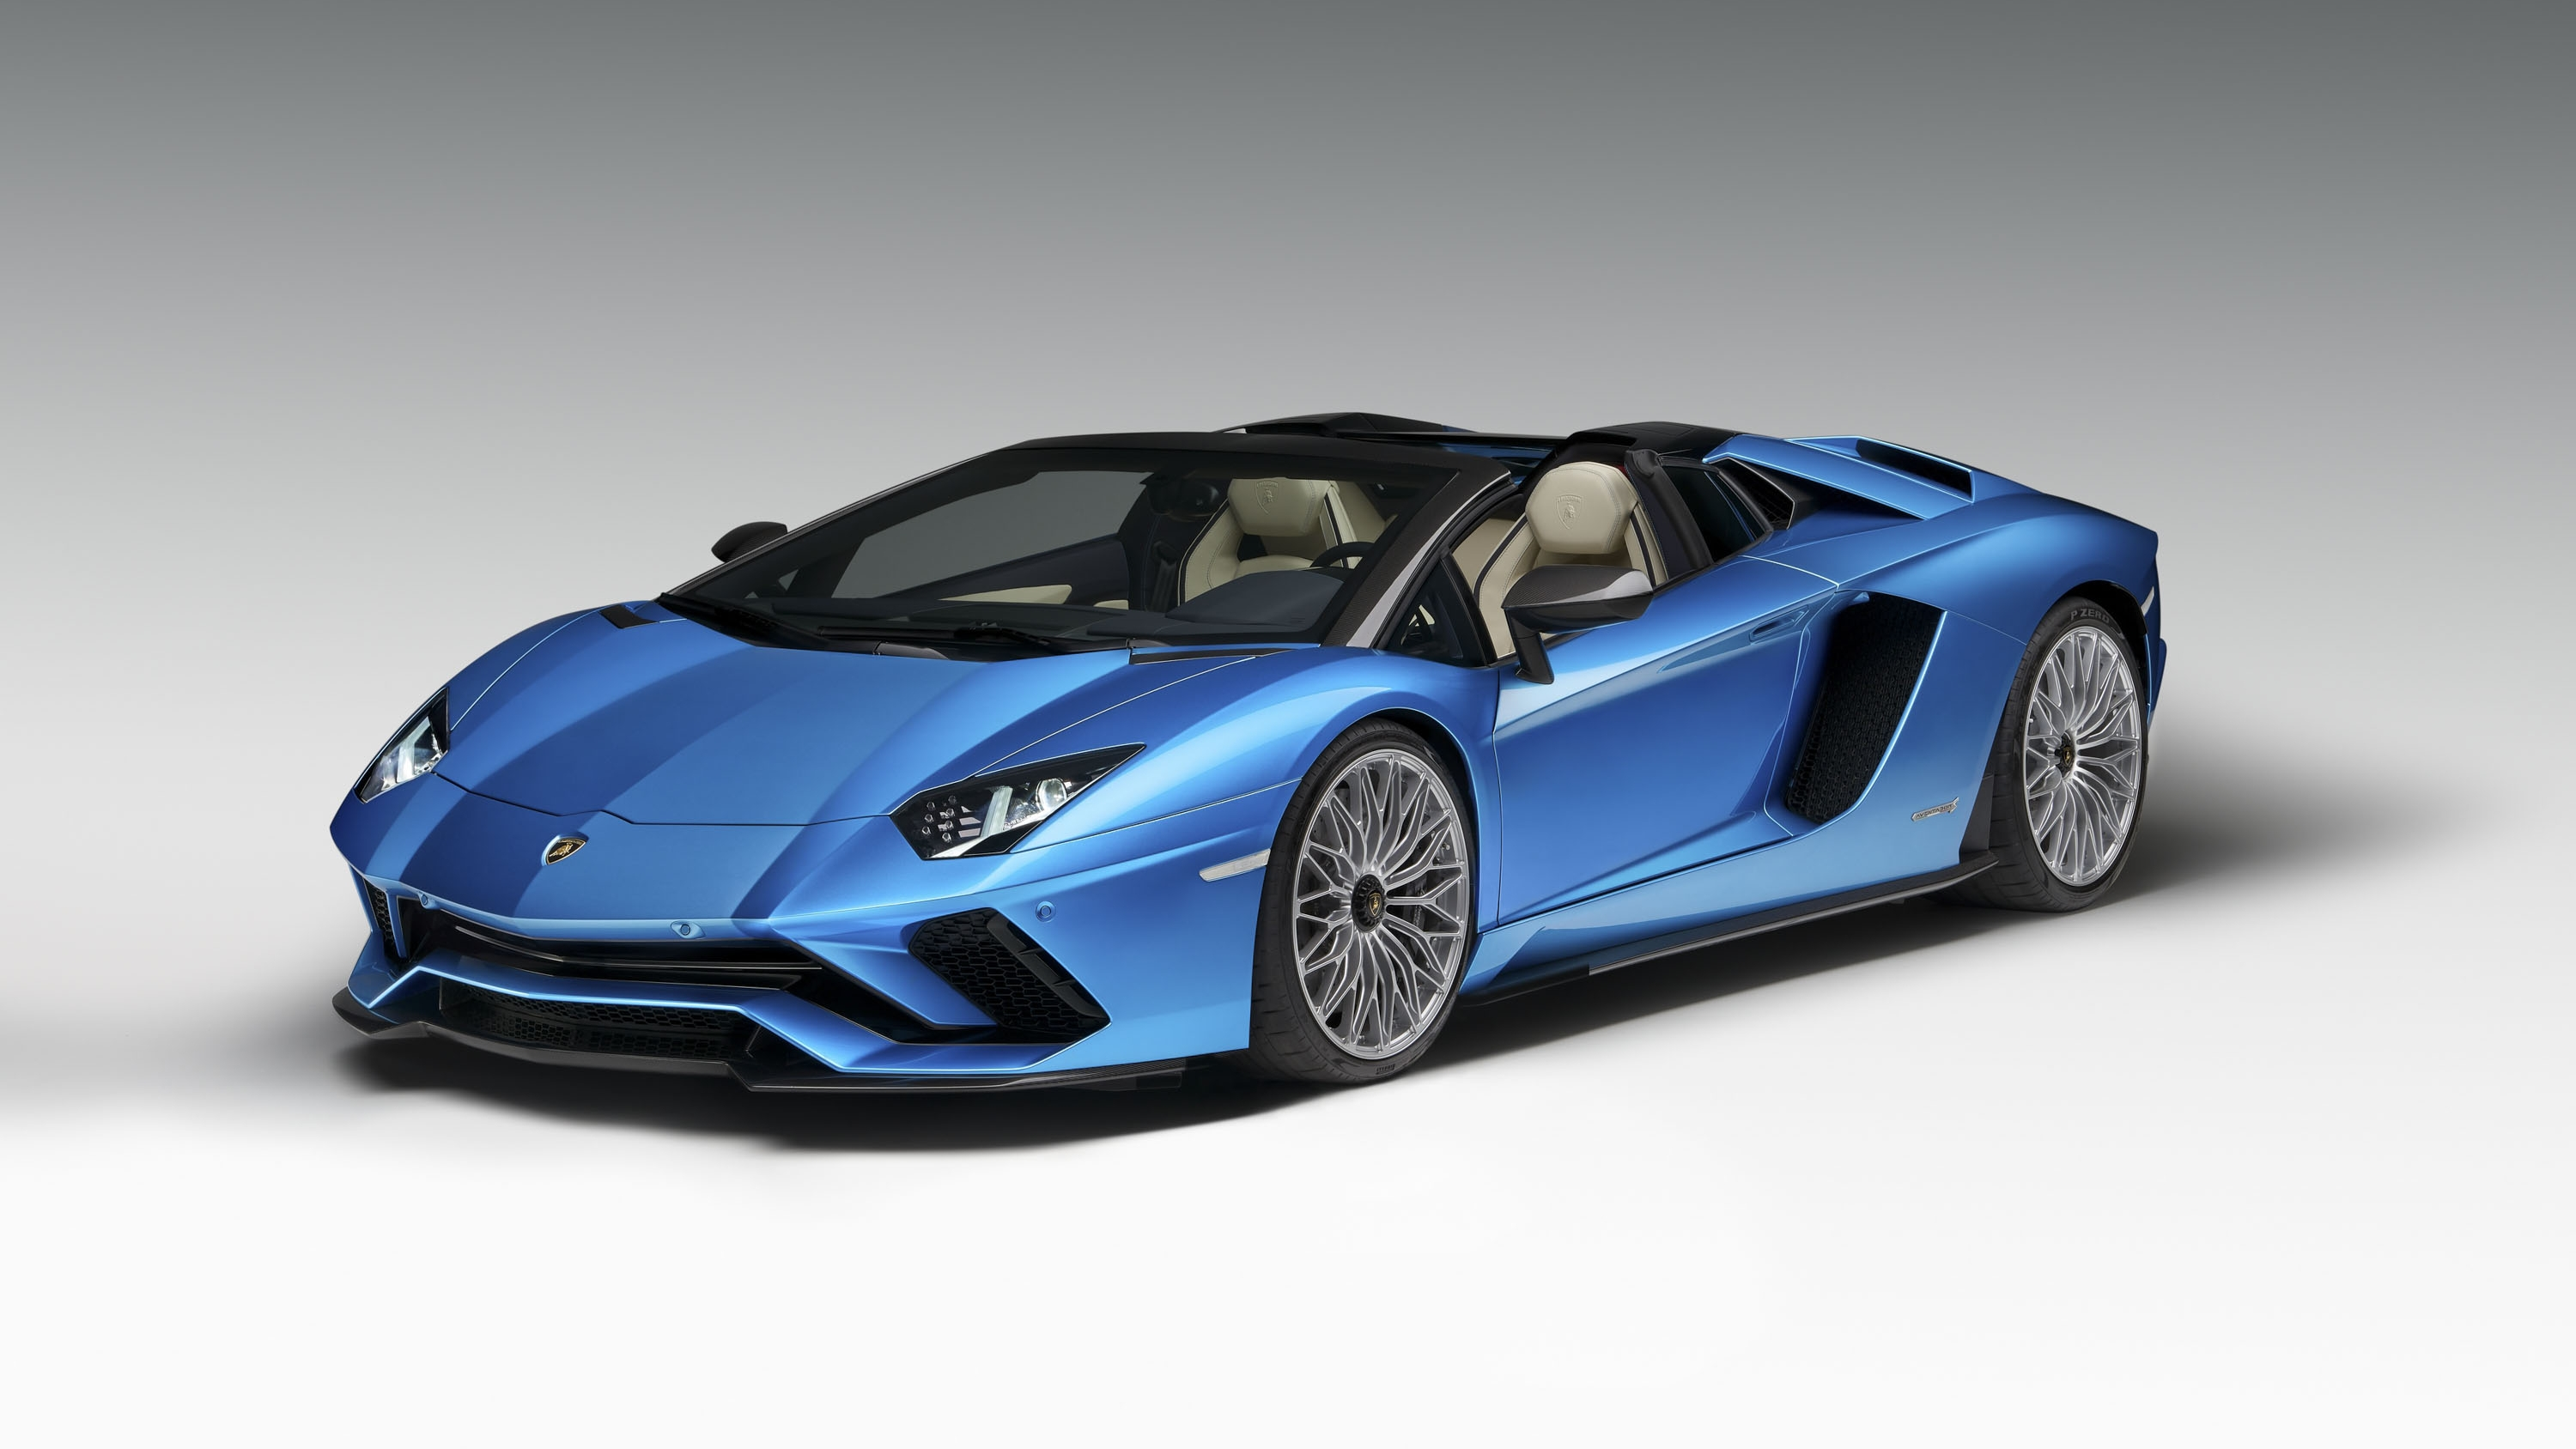 2018 Lamborghini Aventador S Roadster Top Speed